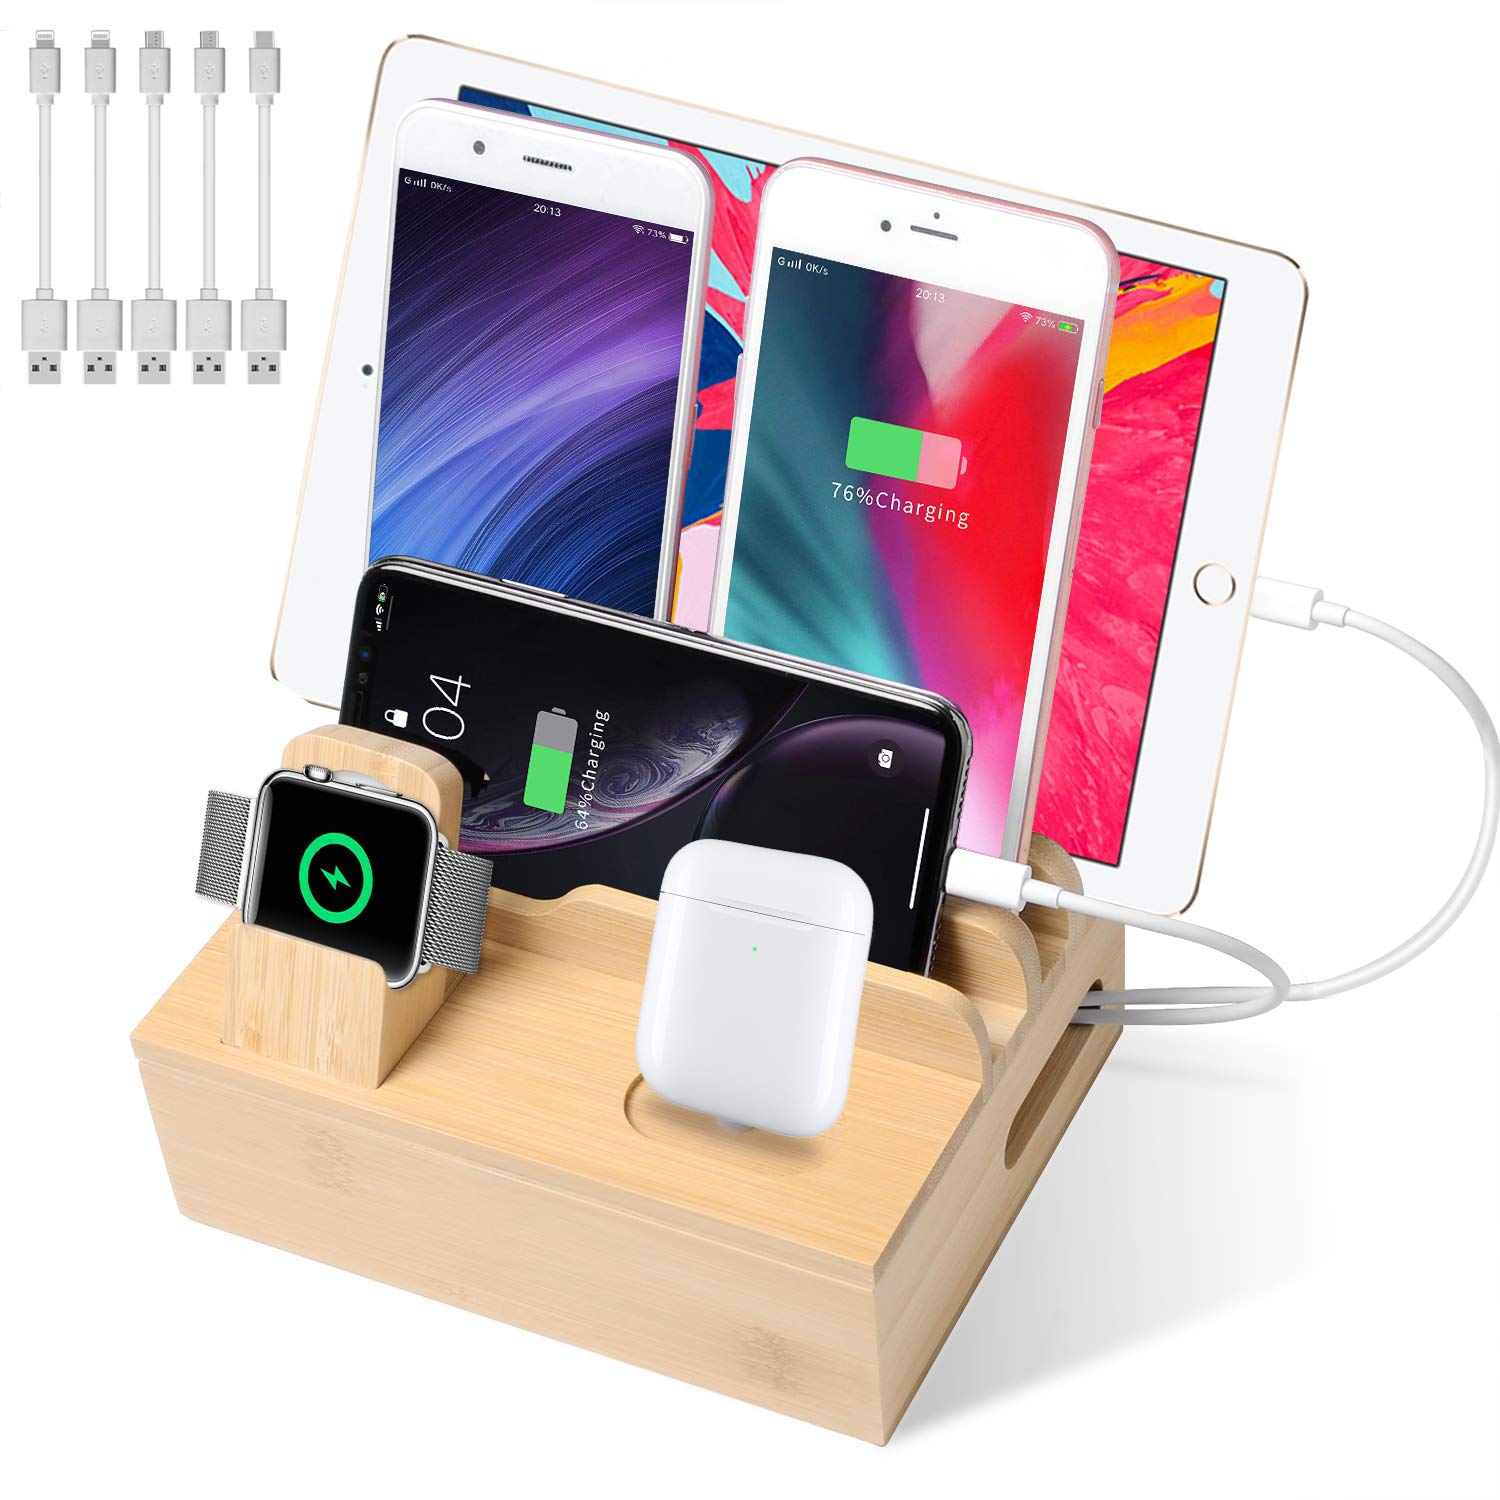 BAUBEY Bamboo Charging Station with 5-Port USB Charger, Fast Desk Wood Charging Docking Organizer for Universal Cell Phone, Tablet, Apple Watch, Airpods(5 Pack Cables Included)